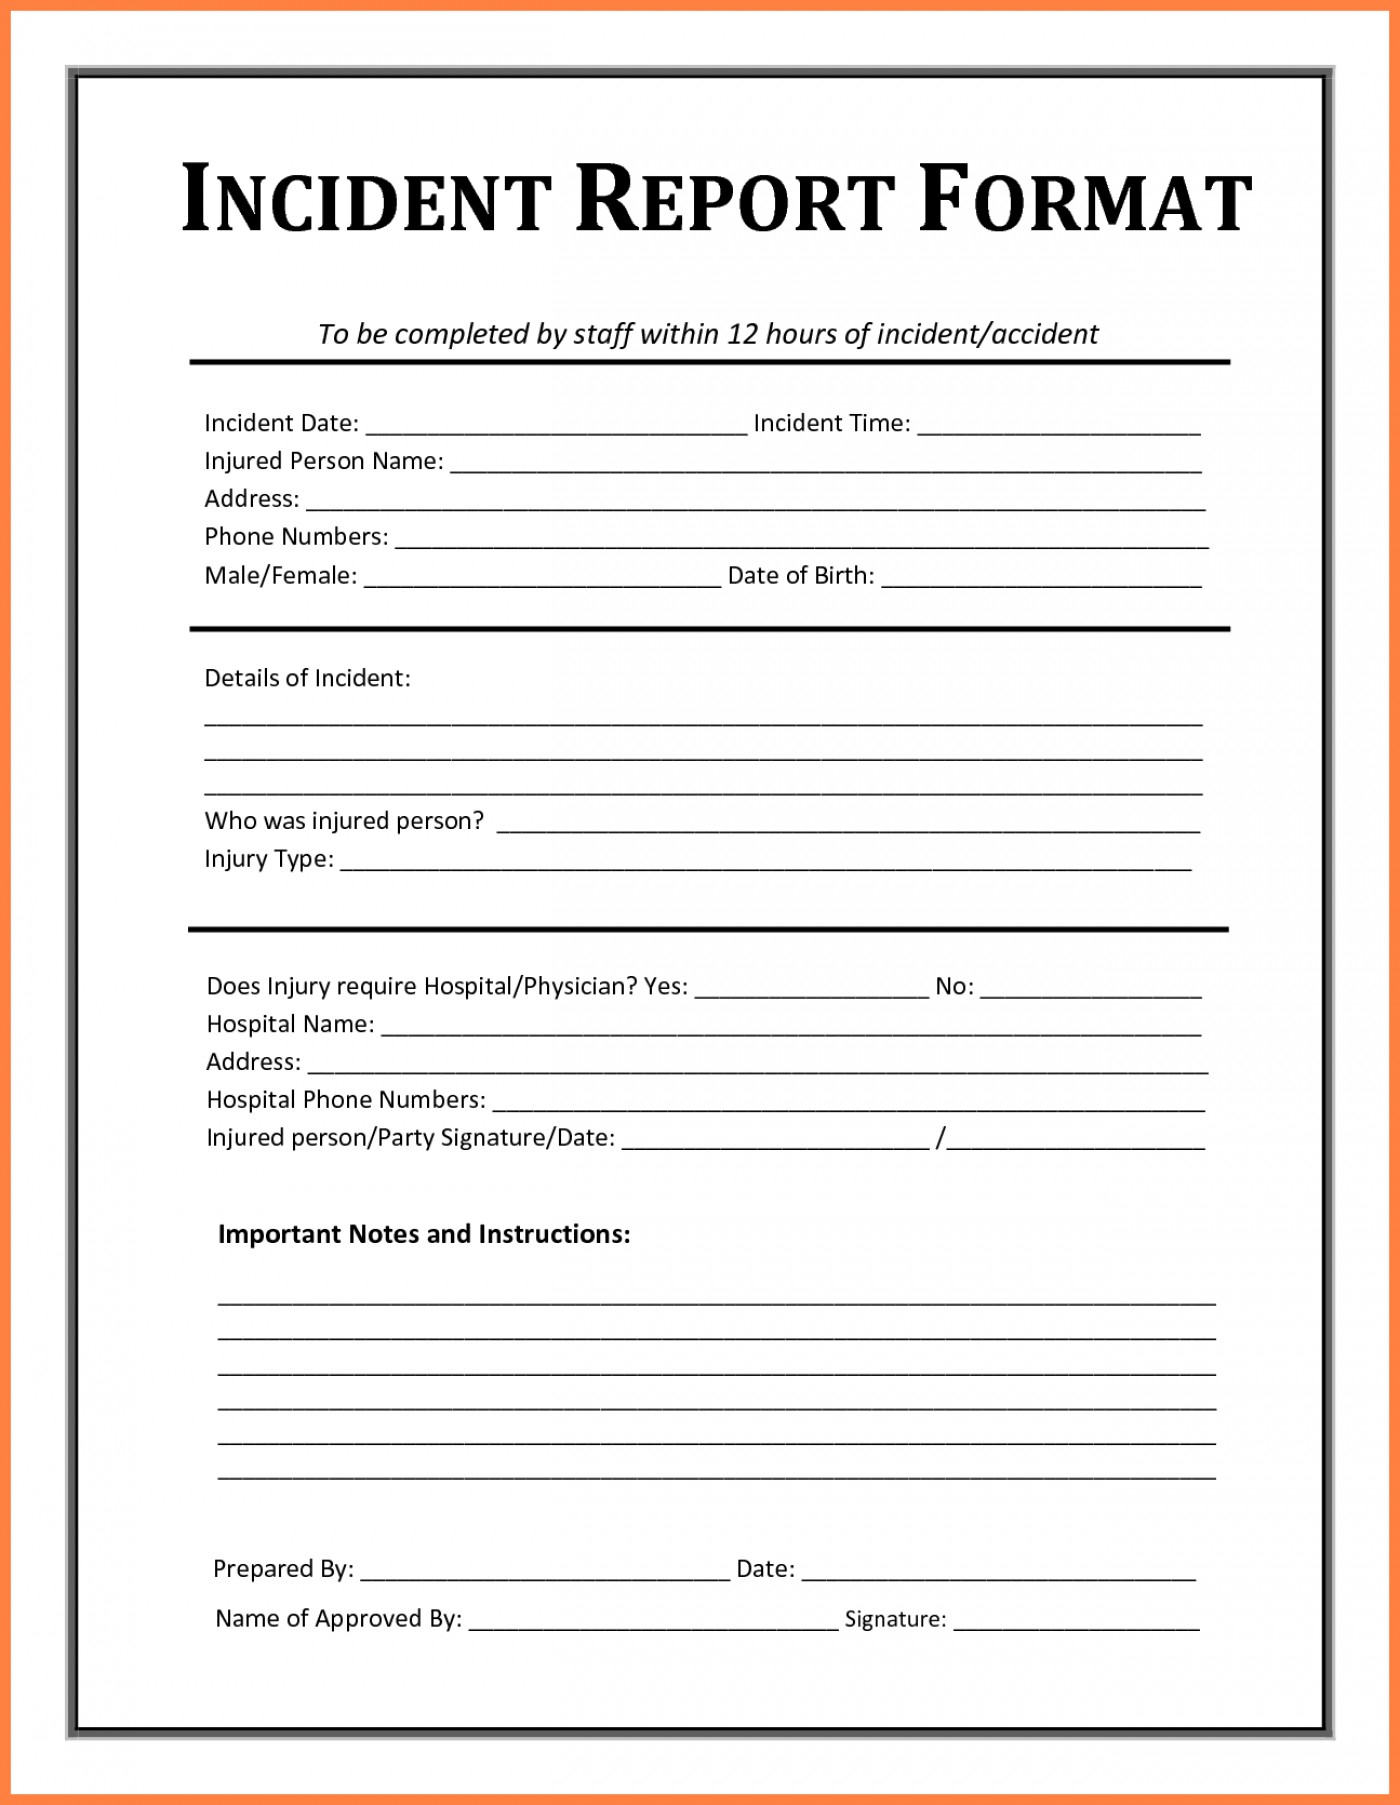 Template Ideas Work Incident Report Employee Form For Best S Of Pertaining To Incident Report Form Template Qld